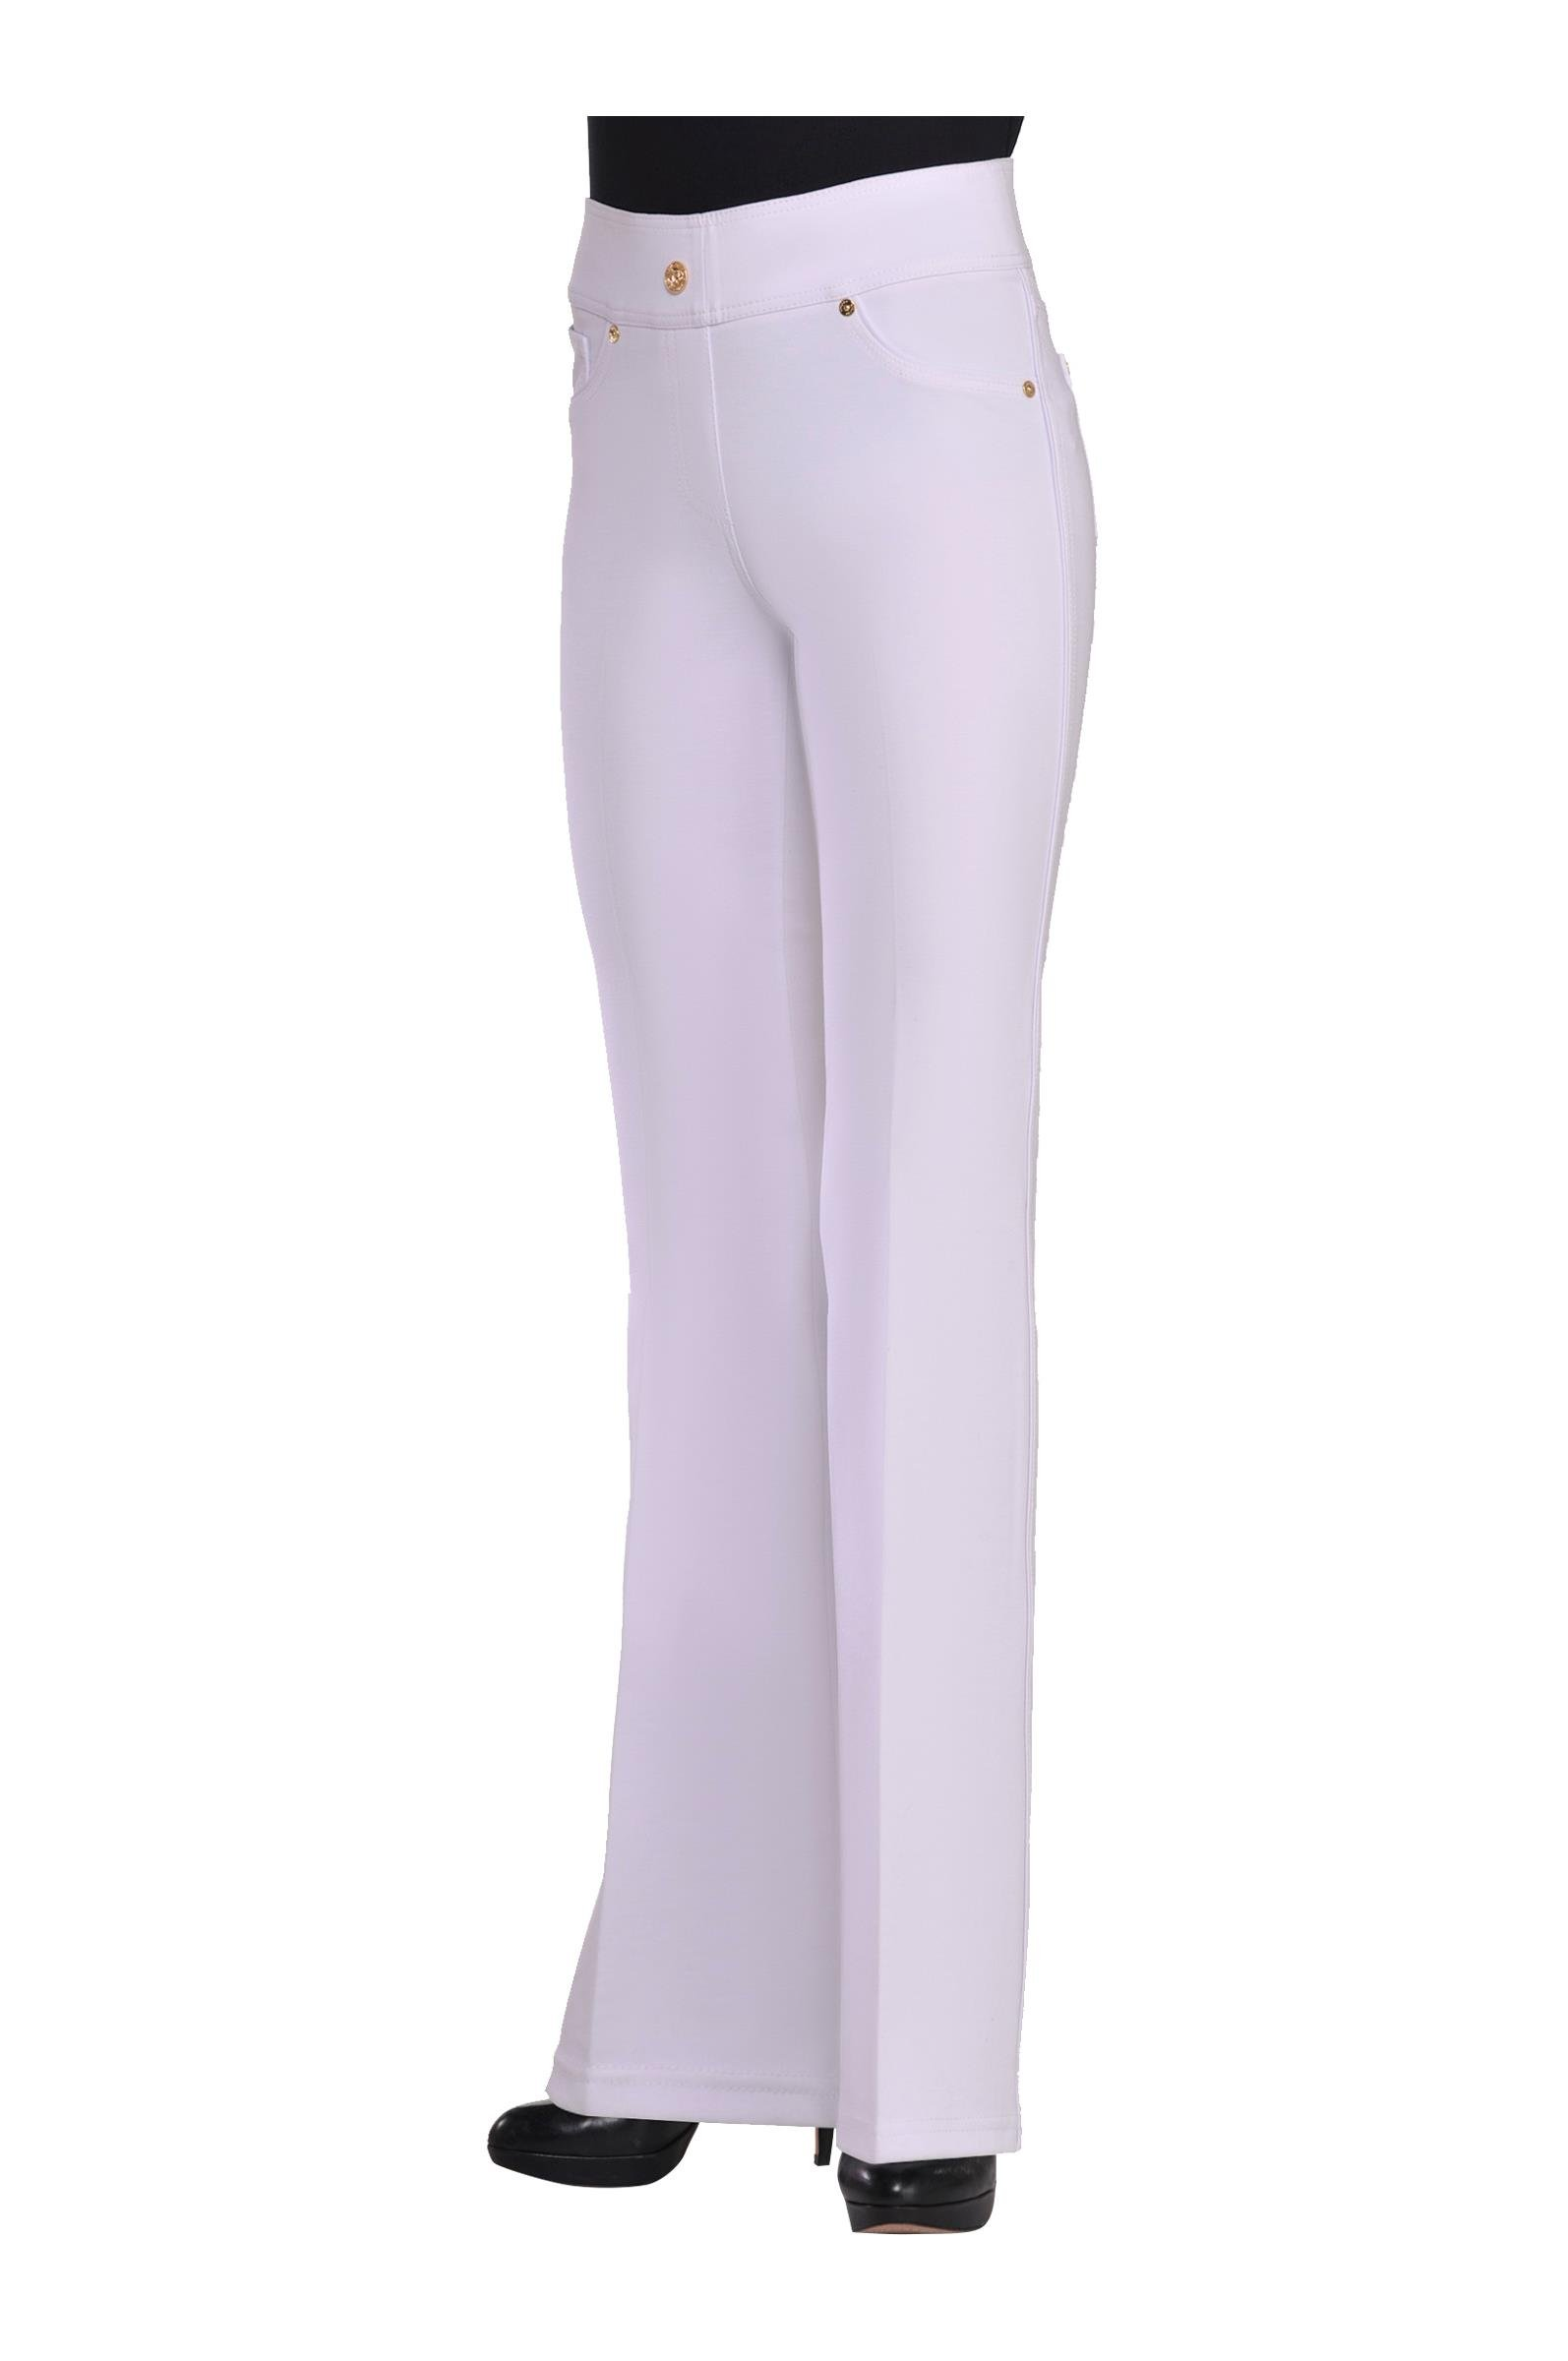 Nygard Women's Petite Slims 2.5 Boot Cut with Piping White